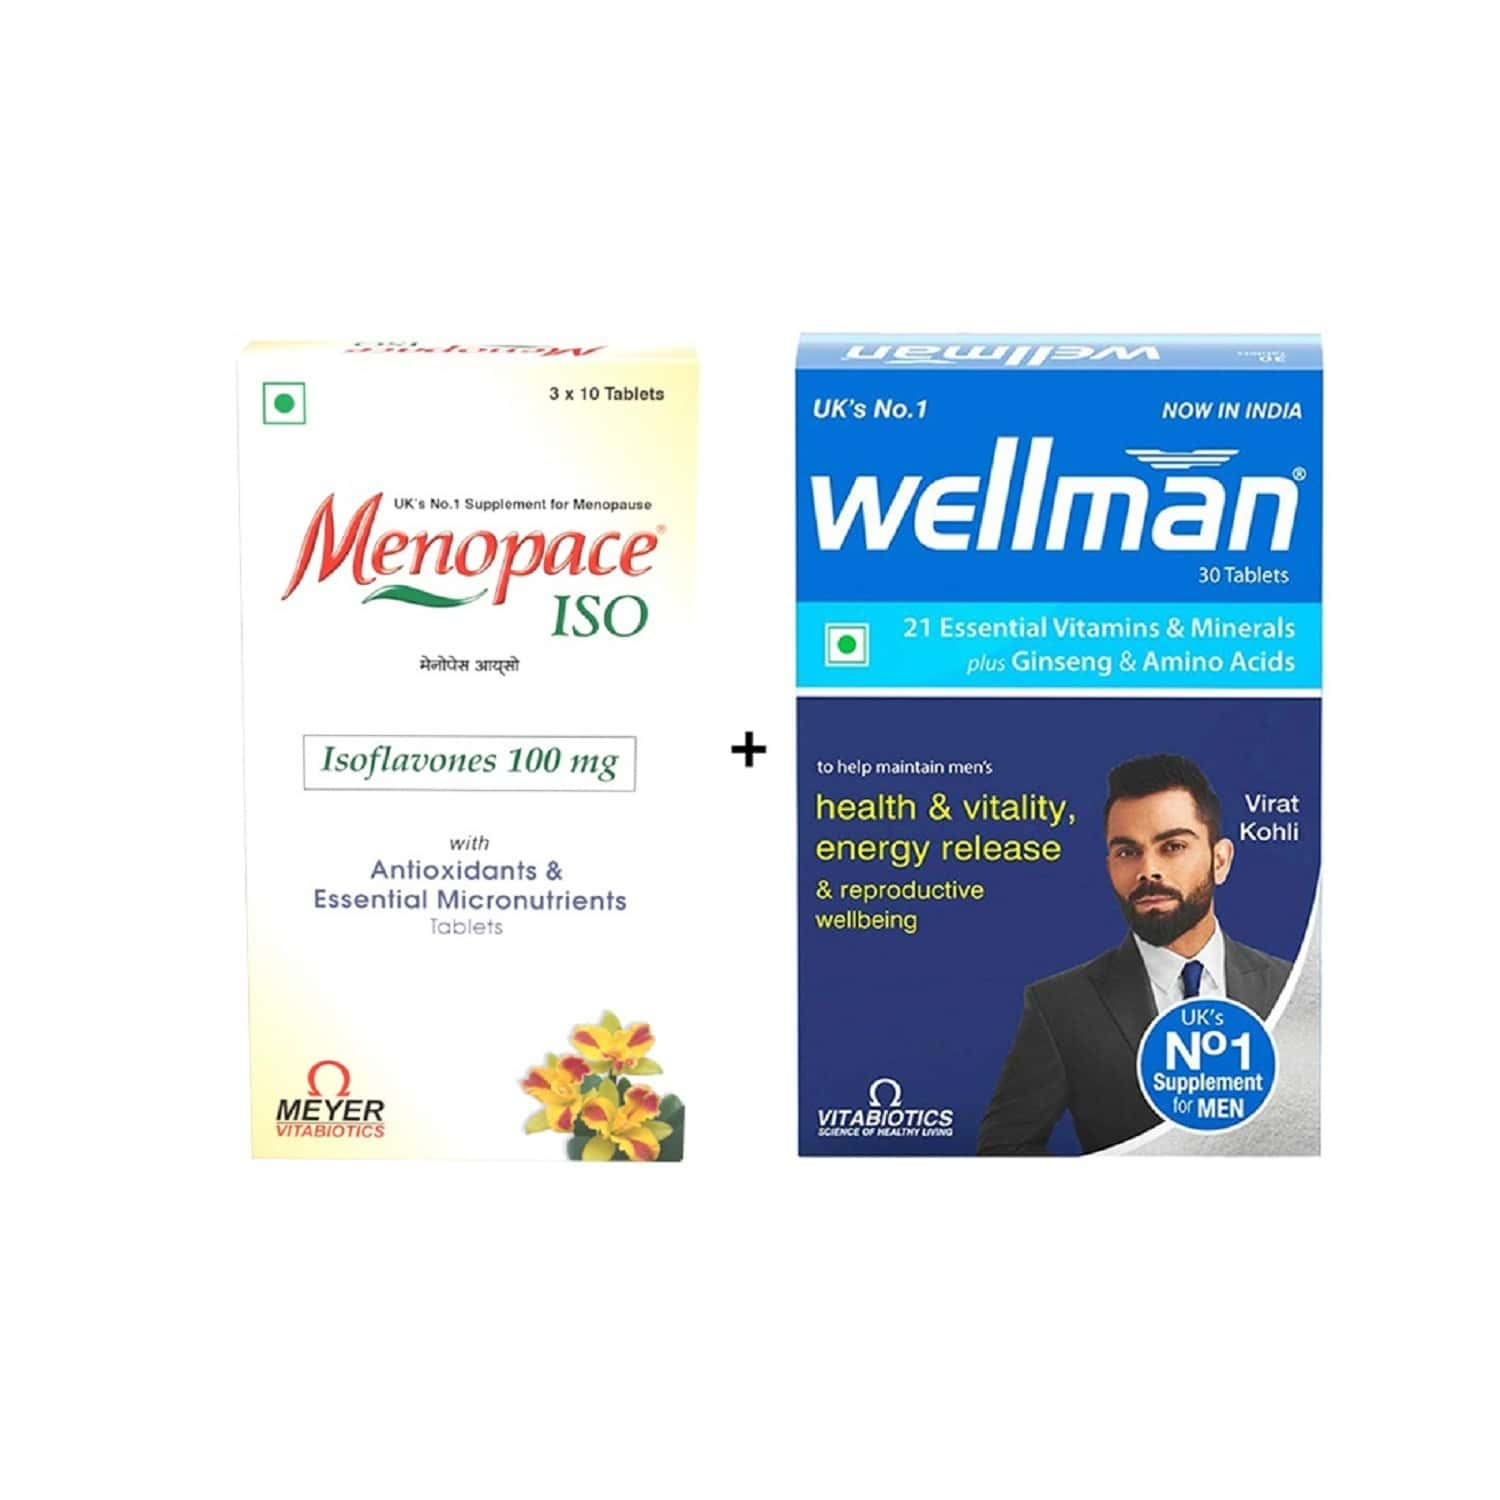 Menopace - Menopause Supplement|22 Key Nutrients With Antioxidants-30 Tab With Wellman 30 Tab Free